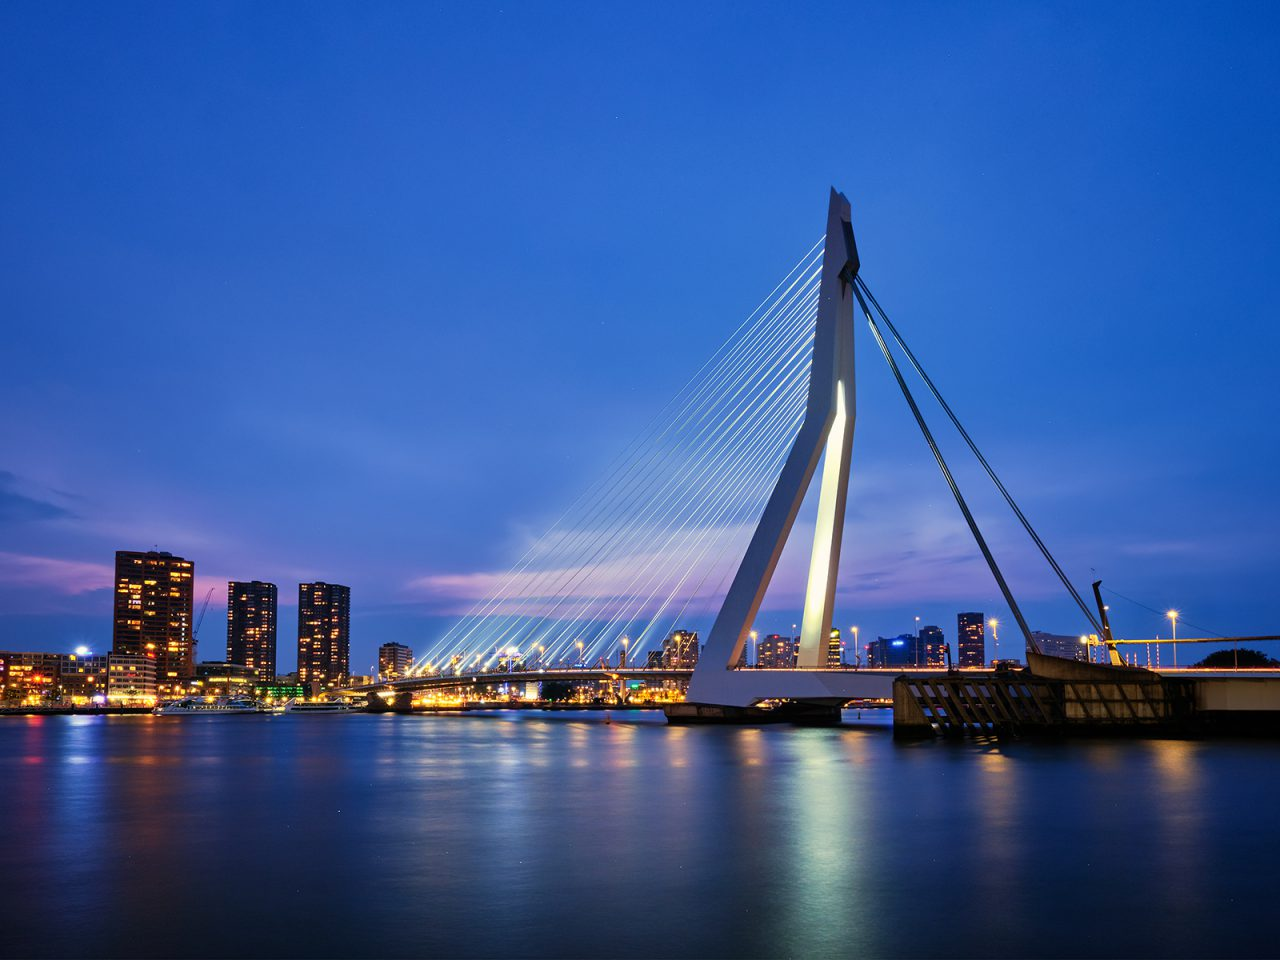 dmc-holland-netherlands-amsterdam-incentive-S05